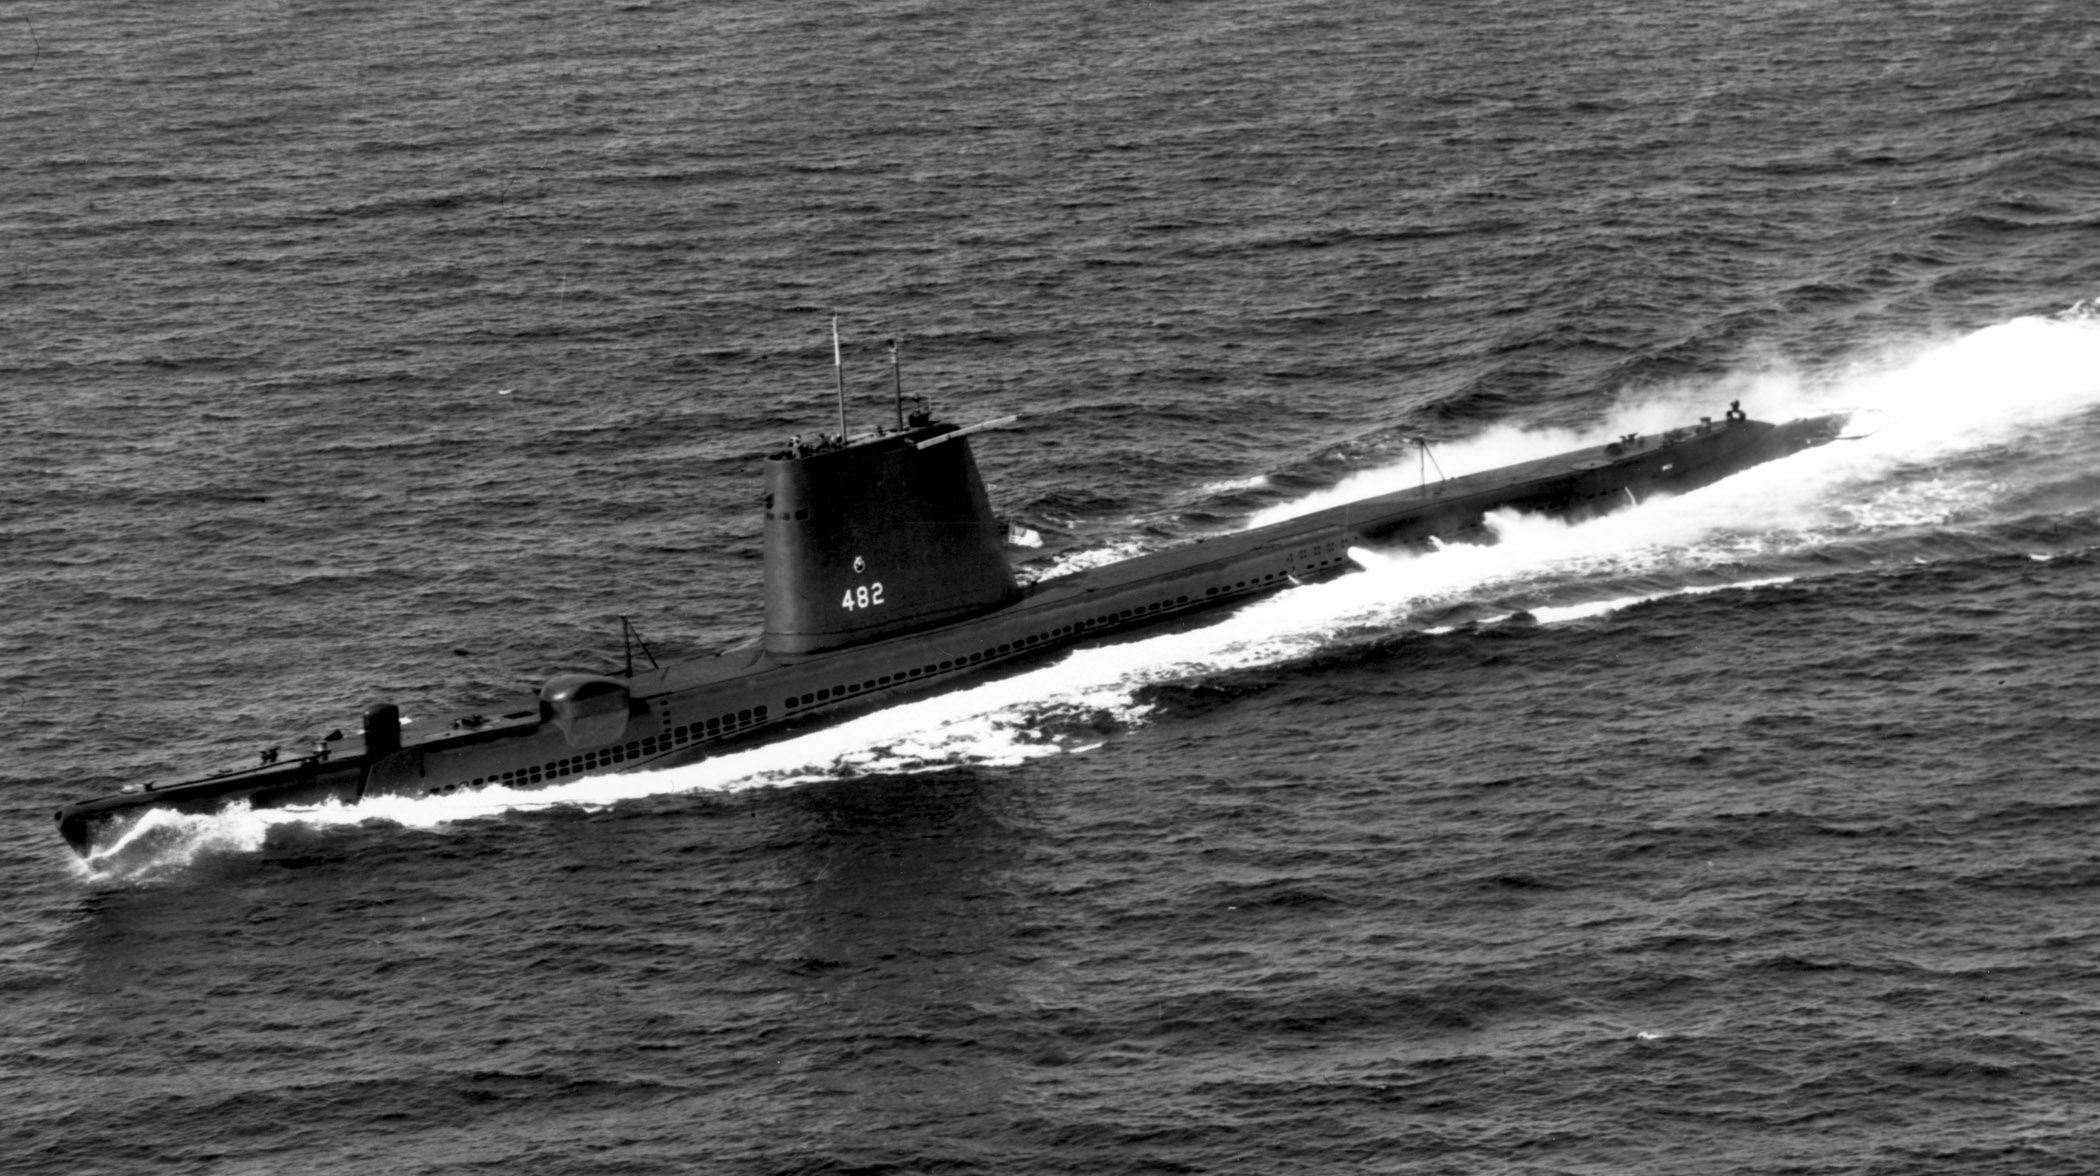 [ Irex at sea 1965 ]